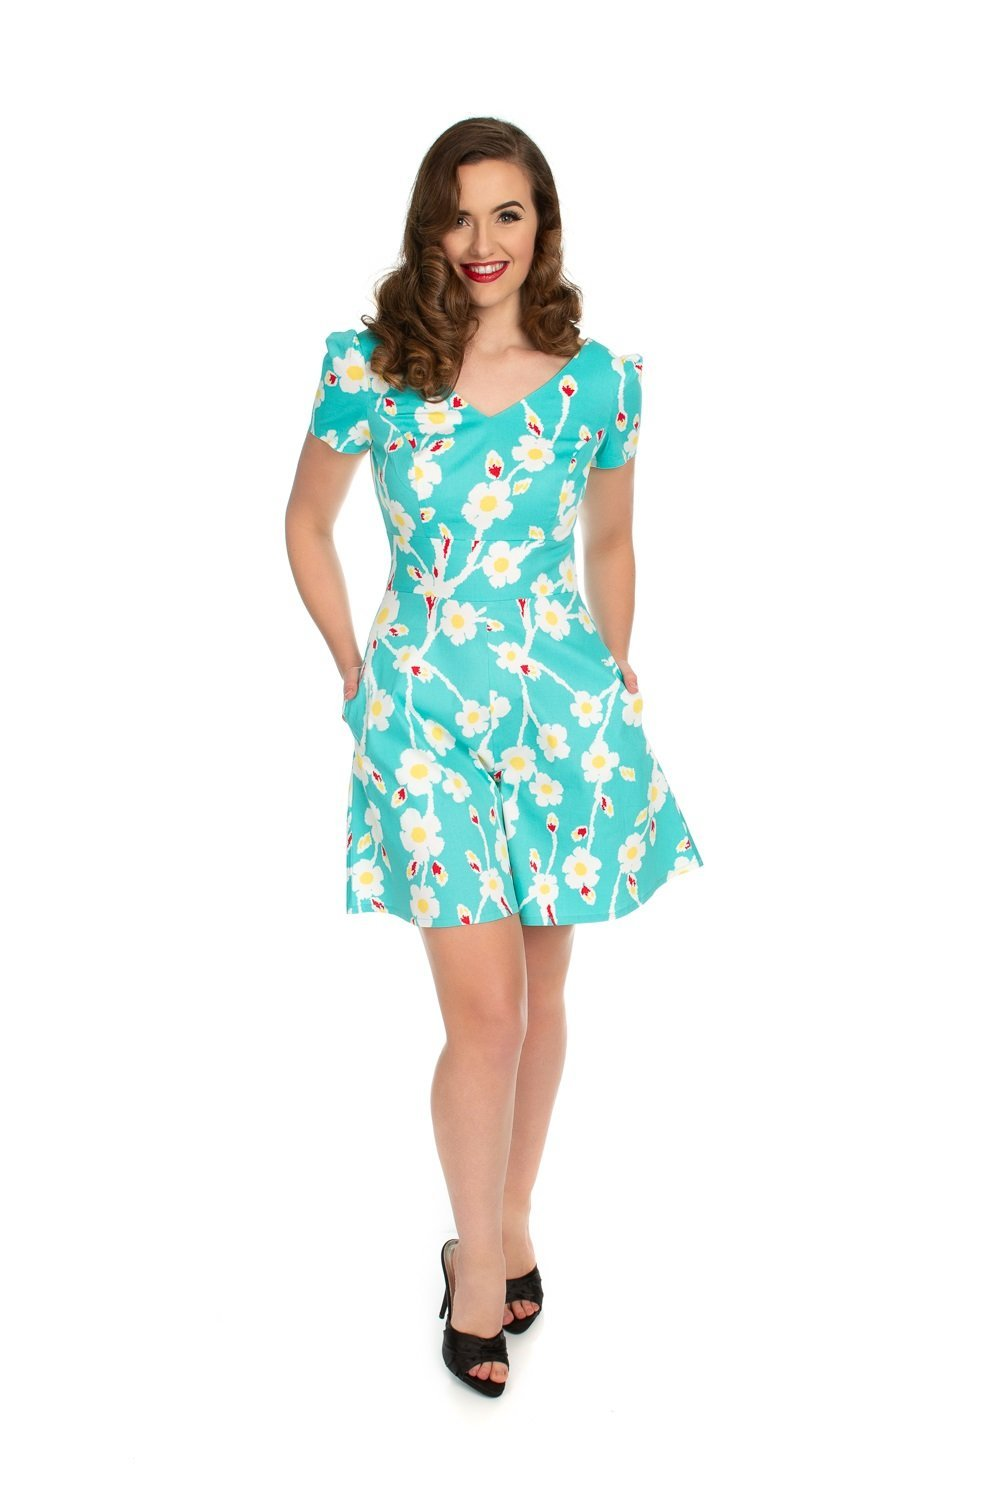 Turquoise Floral Playful Playsuit H&R London - Rockamilly-Dresses-Vintage